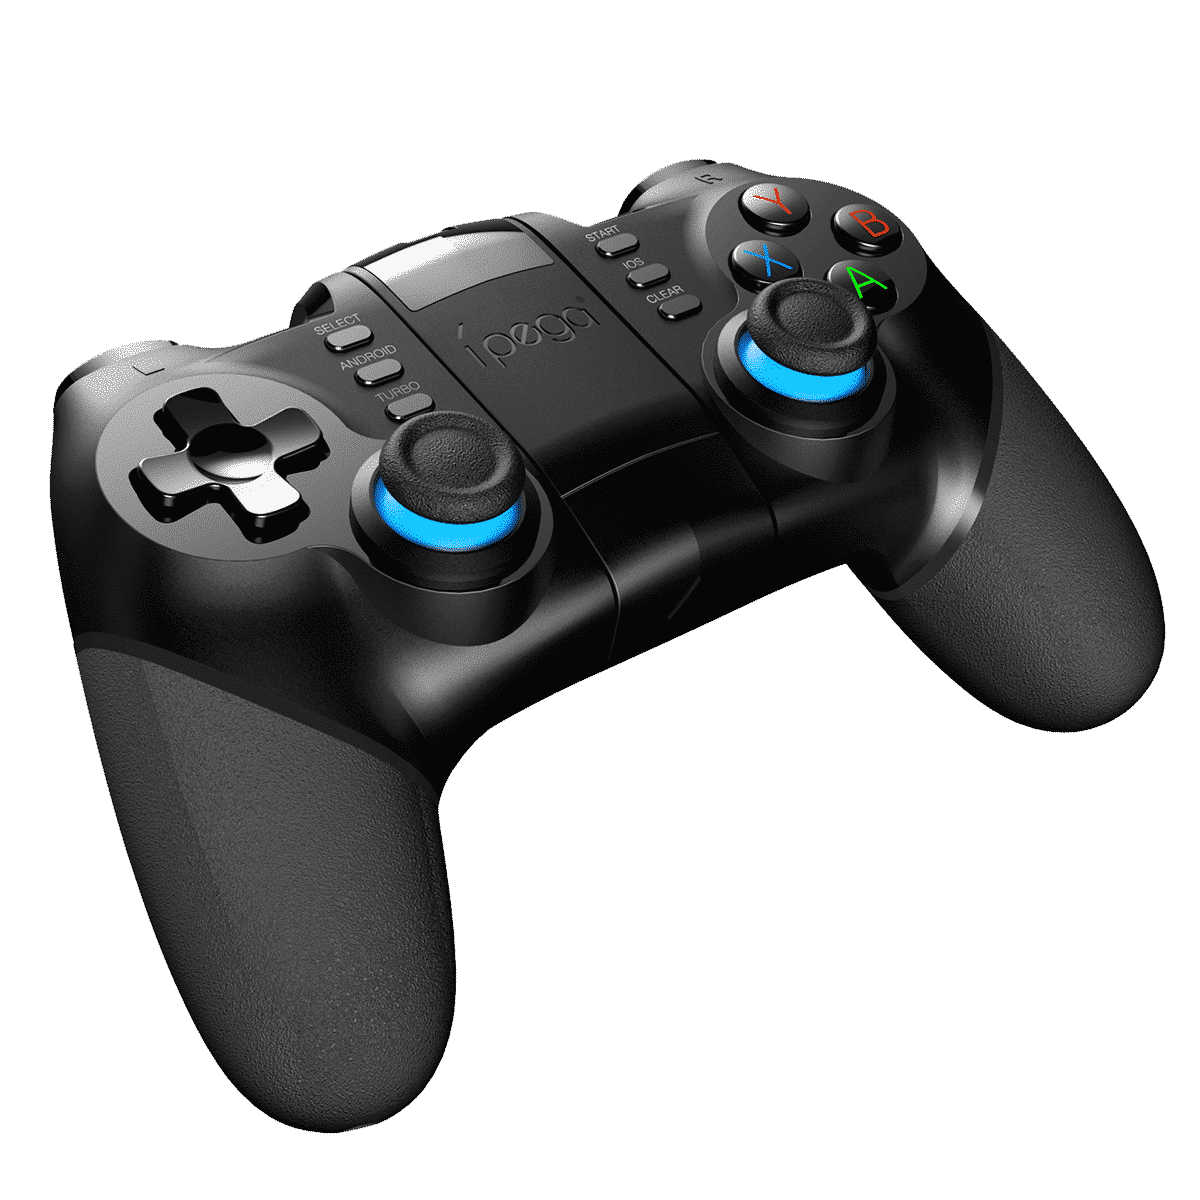 iPega PG-9156 Bluetooth and 2.4Ghz wireless Gamepad for Android, Windows and iOS - Side View